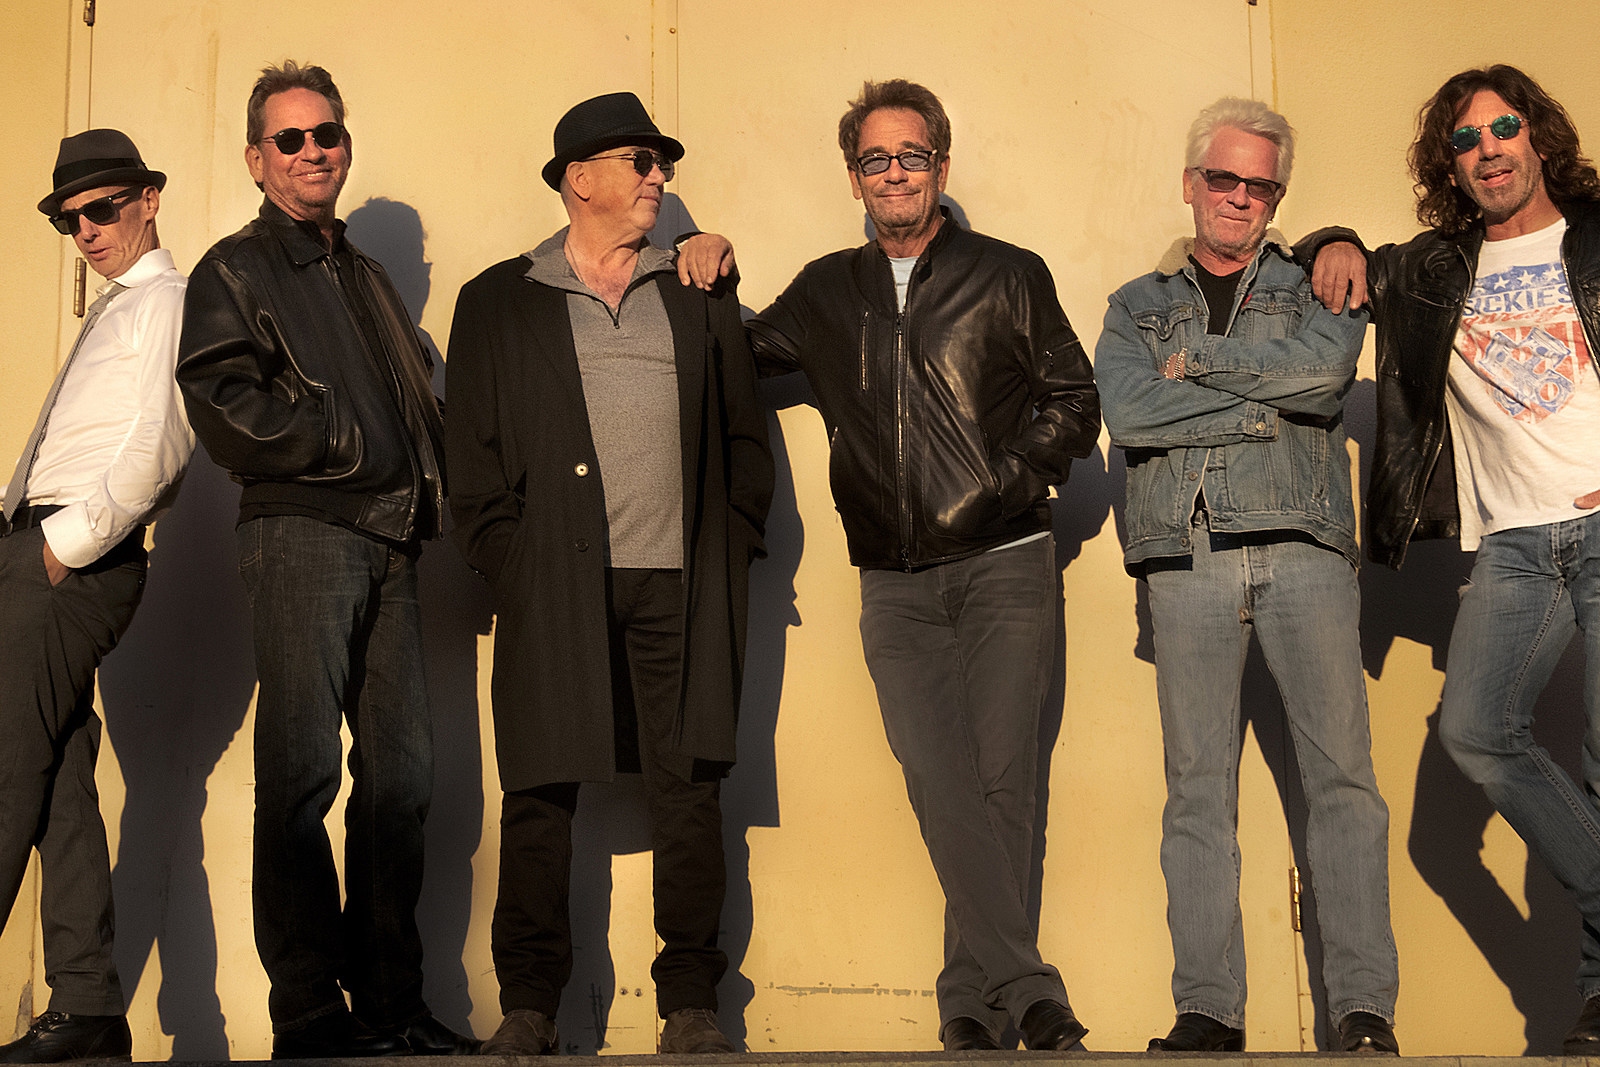 Huey Lewis and the News Announce New Album, 'Weather'